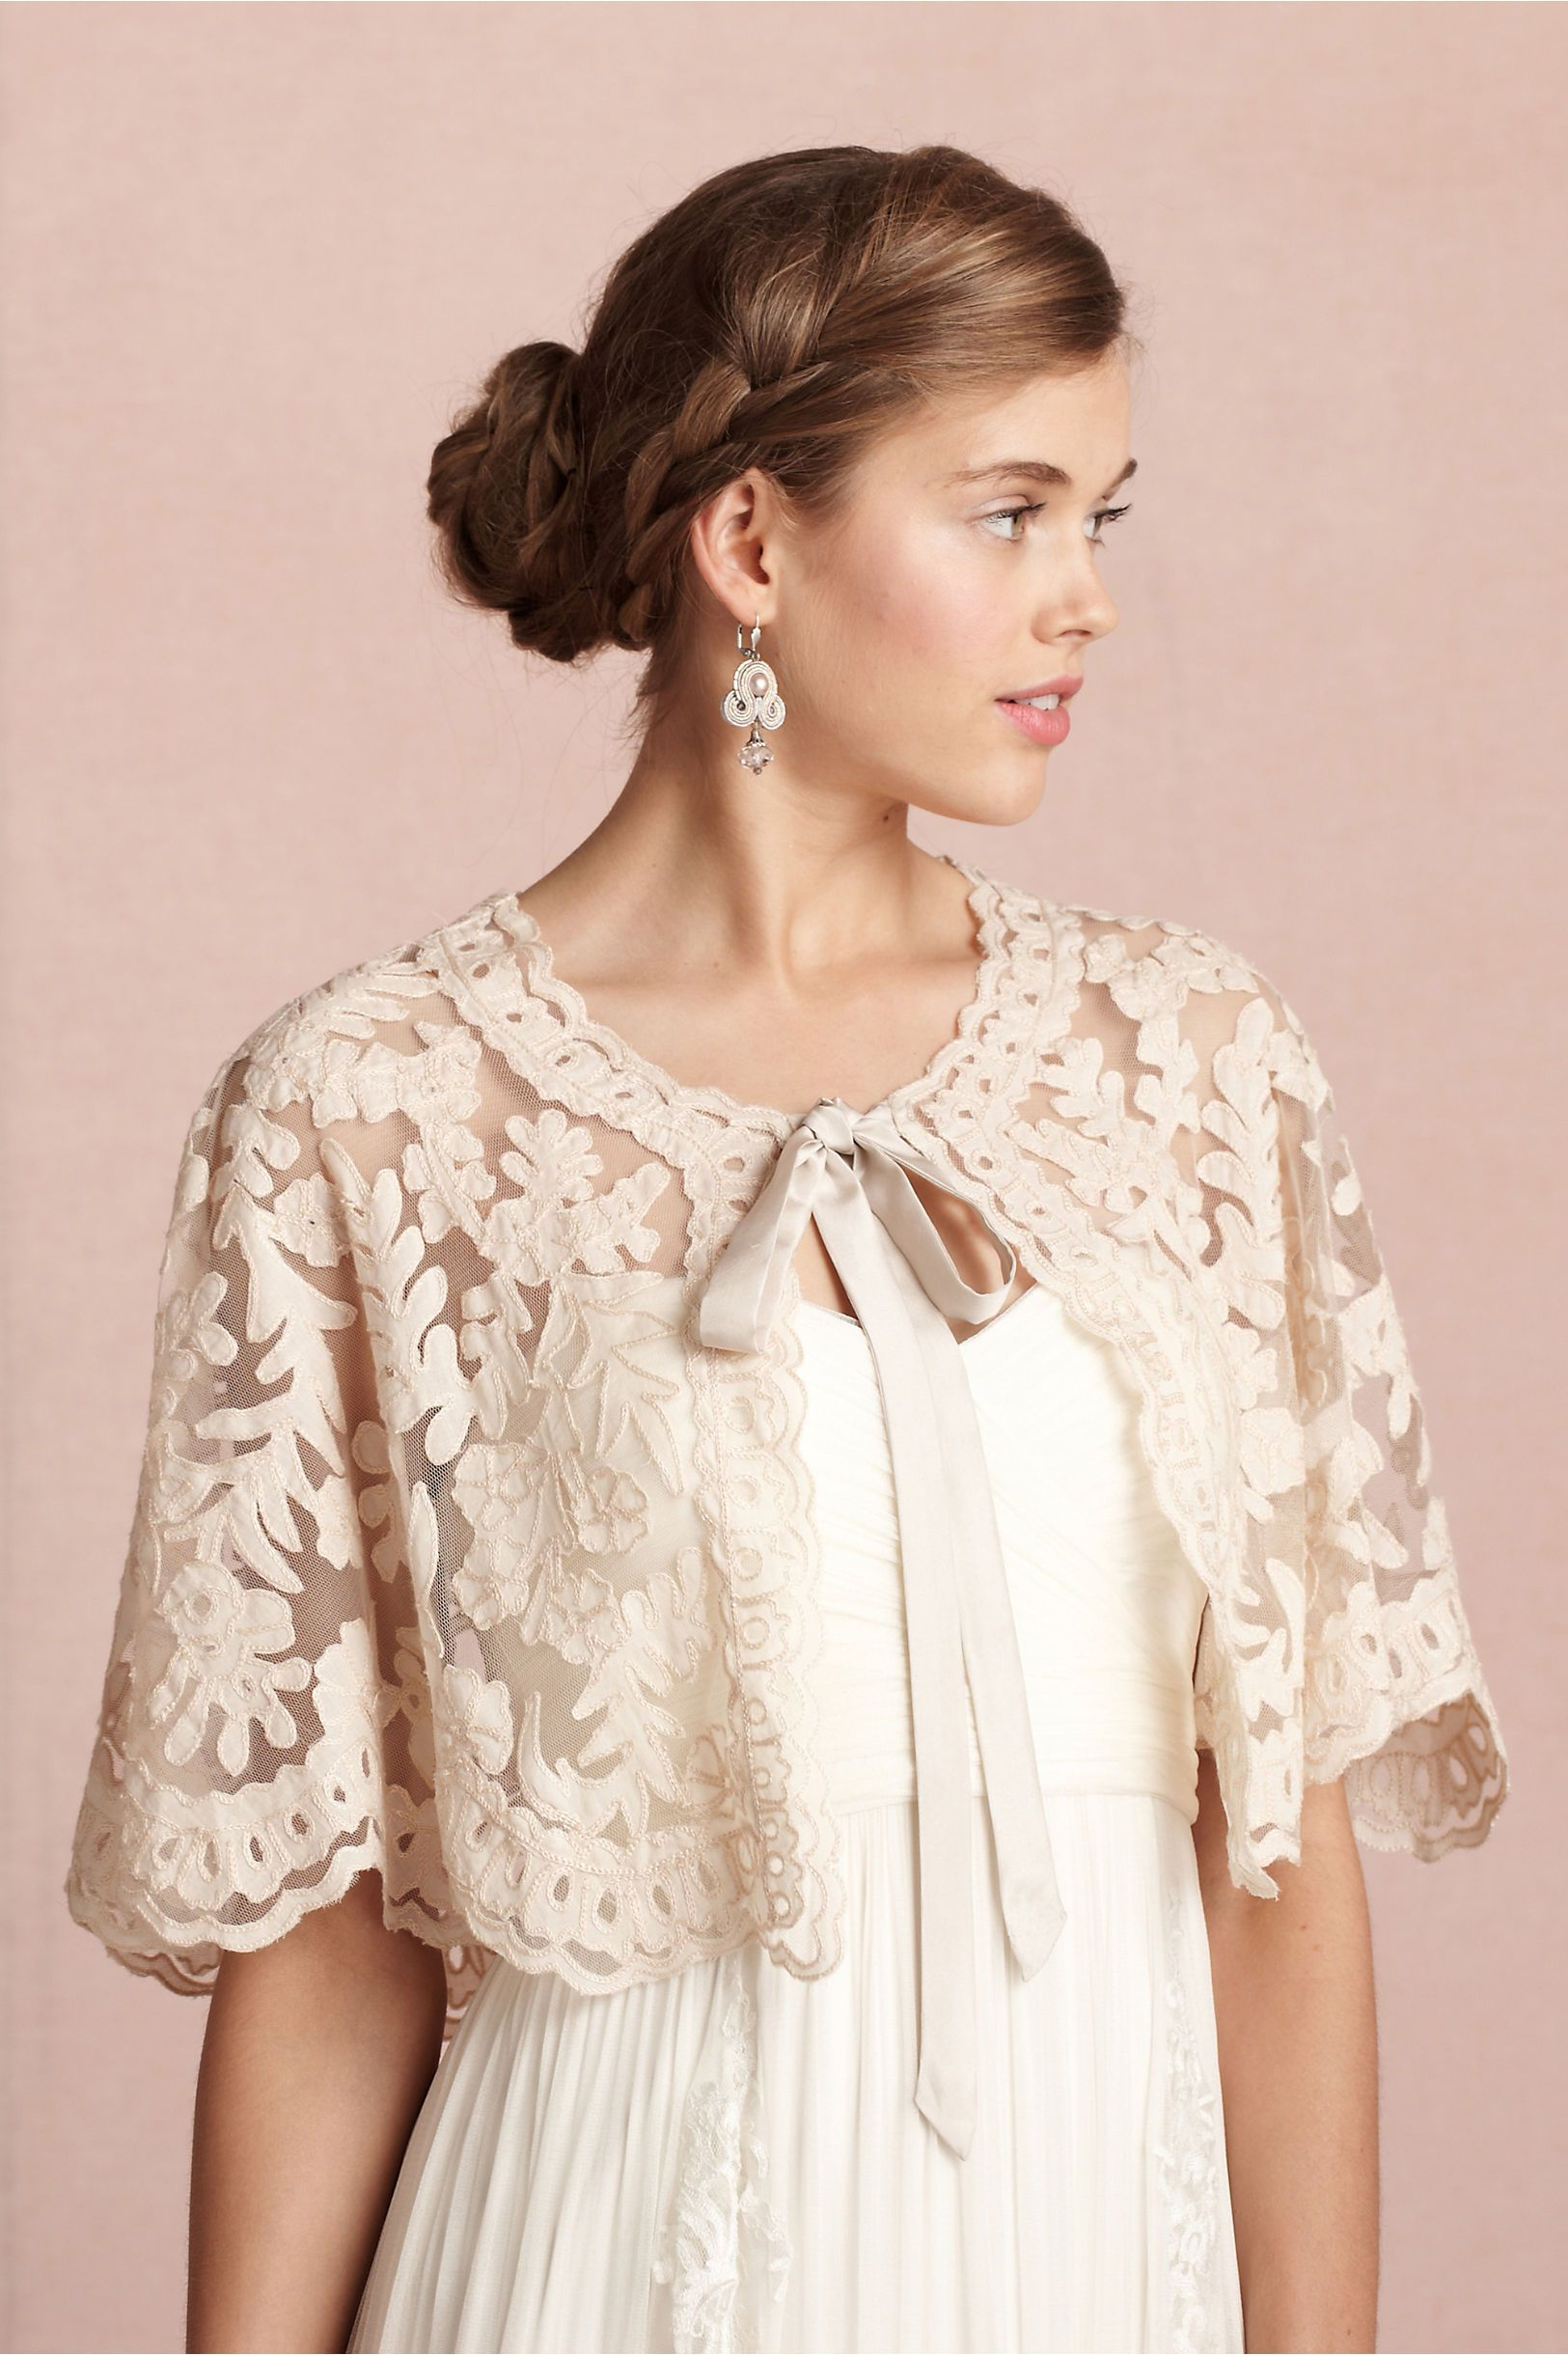 Boulevardier Capelet in SHOP The Bride Cover Ups at BHLDN | wedding ...